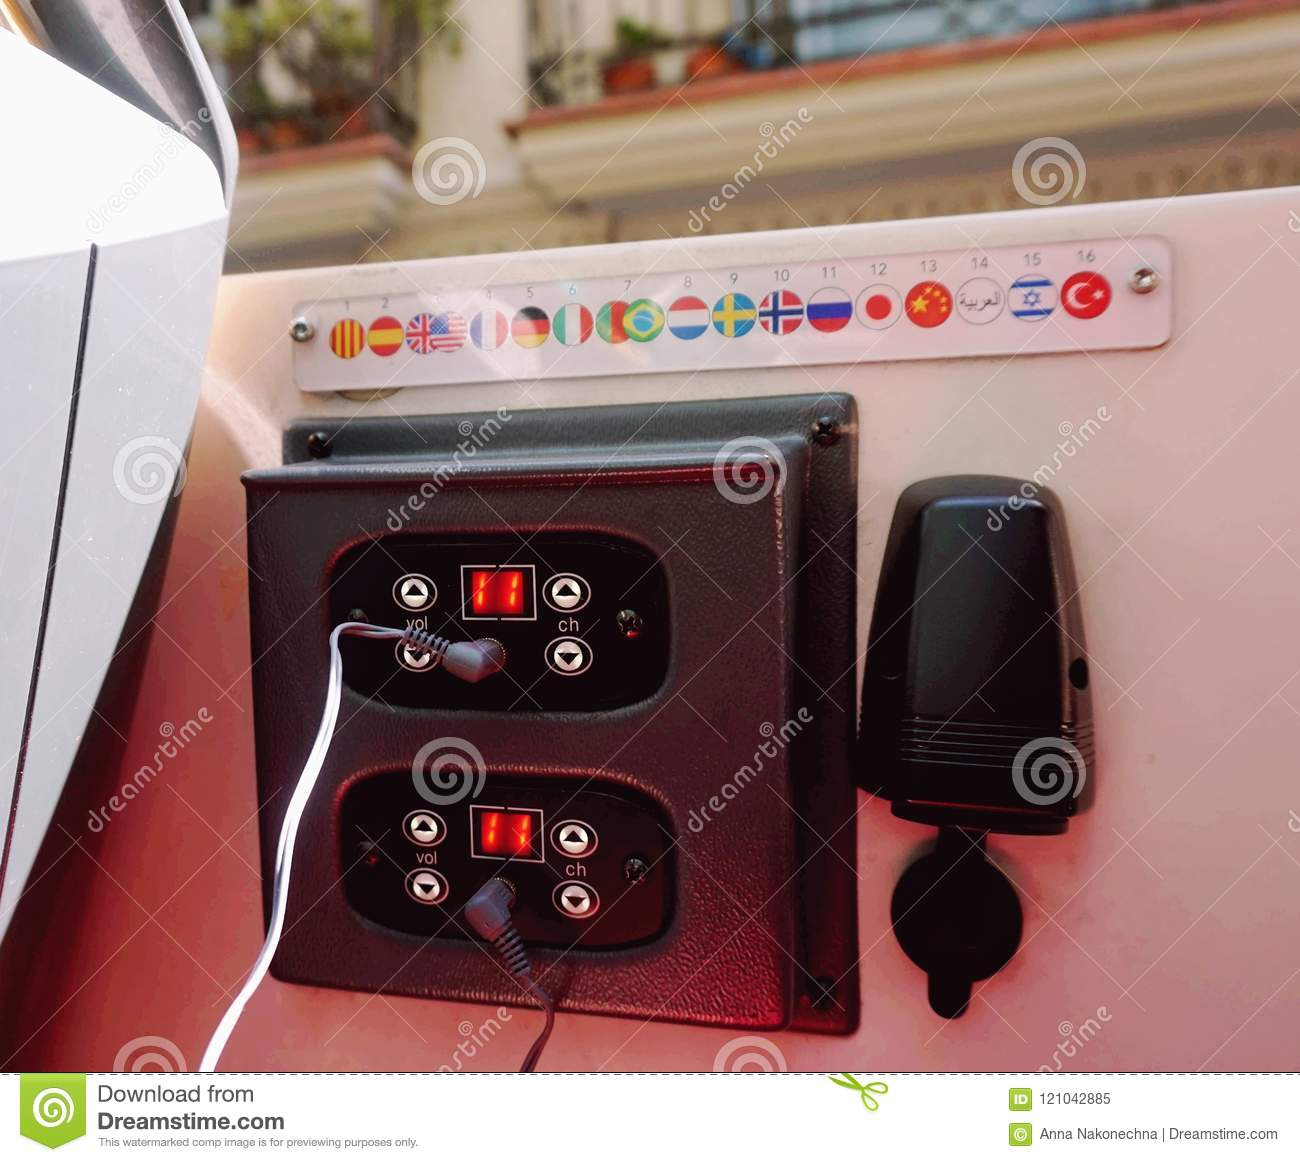 A device for operating an audio guide in a bus in different languages